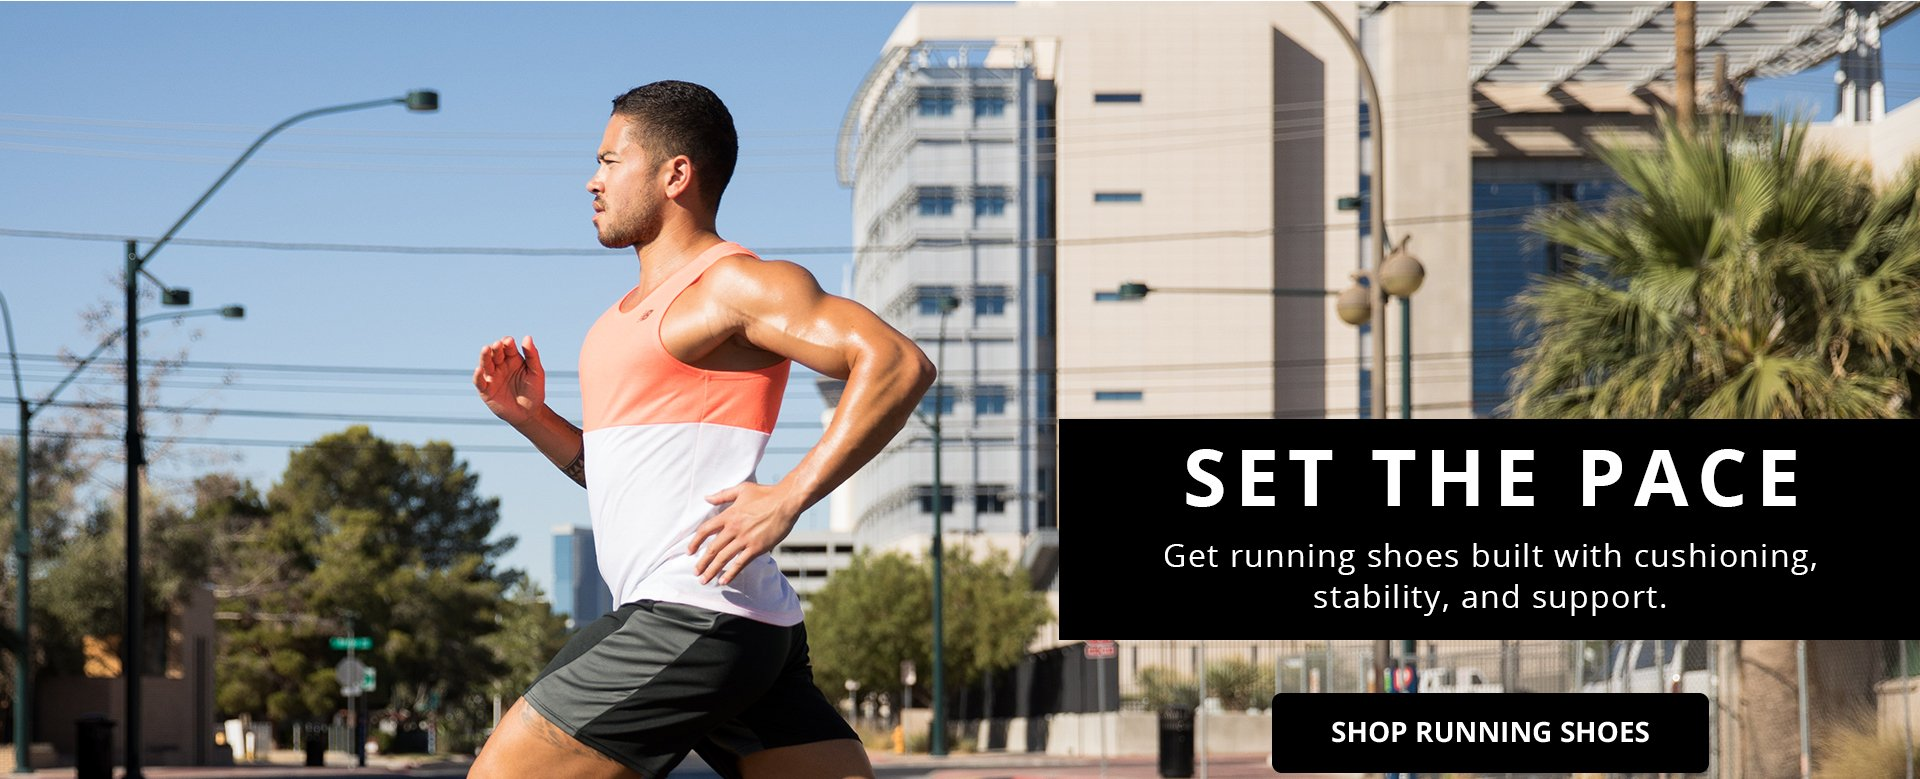 Set The Pace. Get running shoes built with cushioning, stability, and support. Shop Running Shoes.